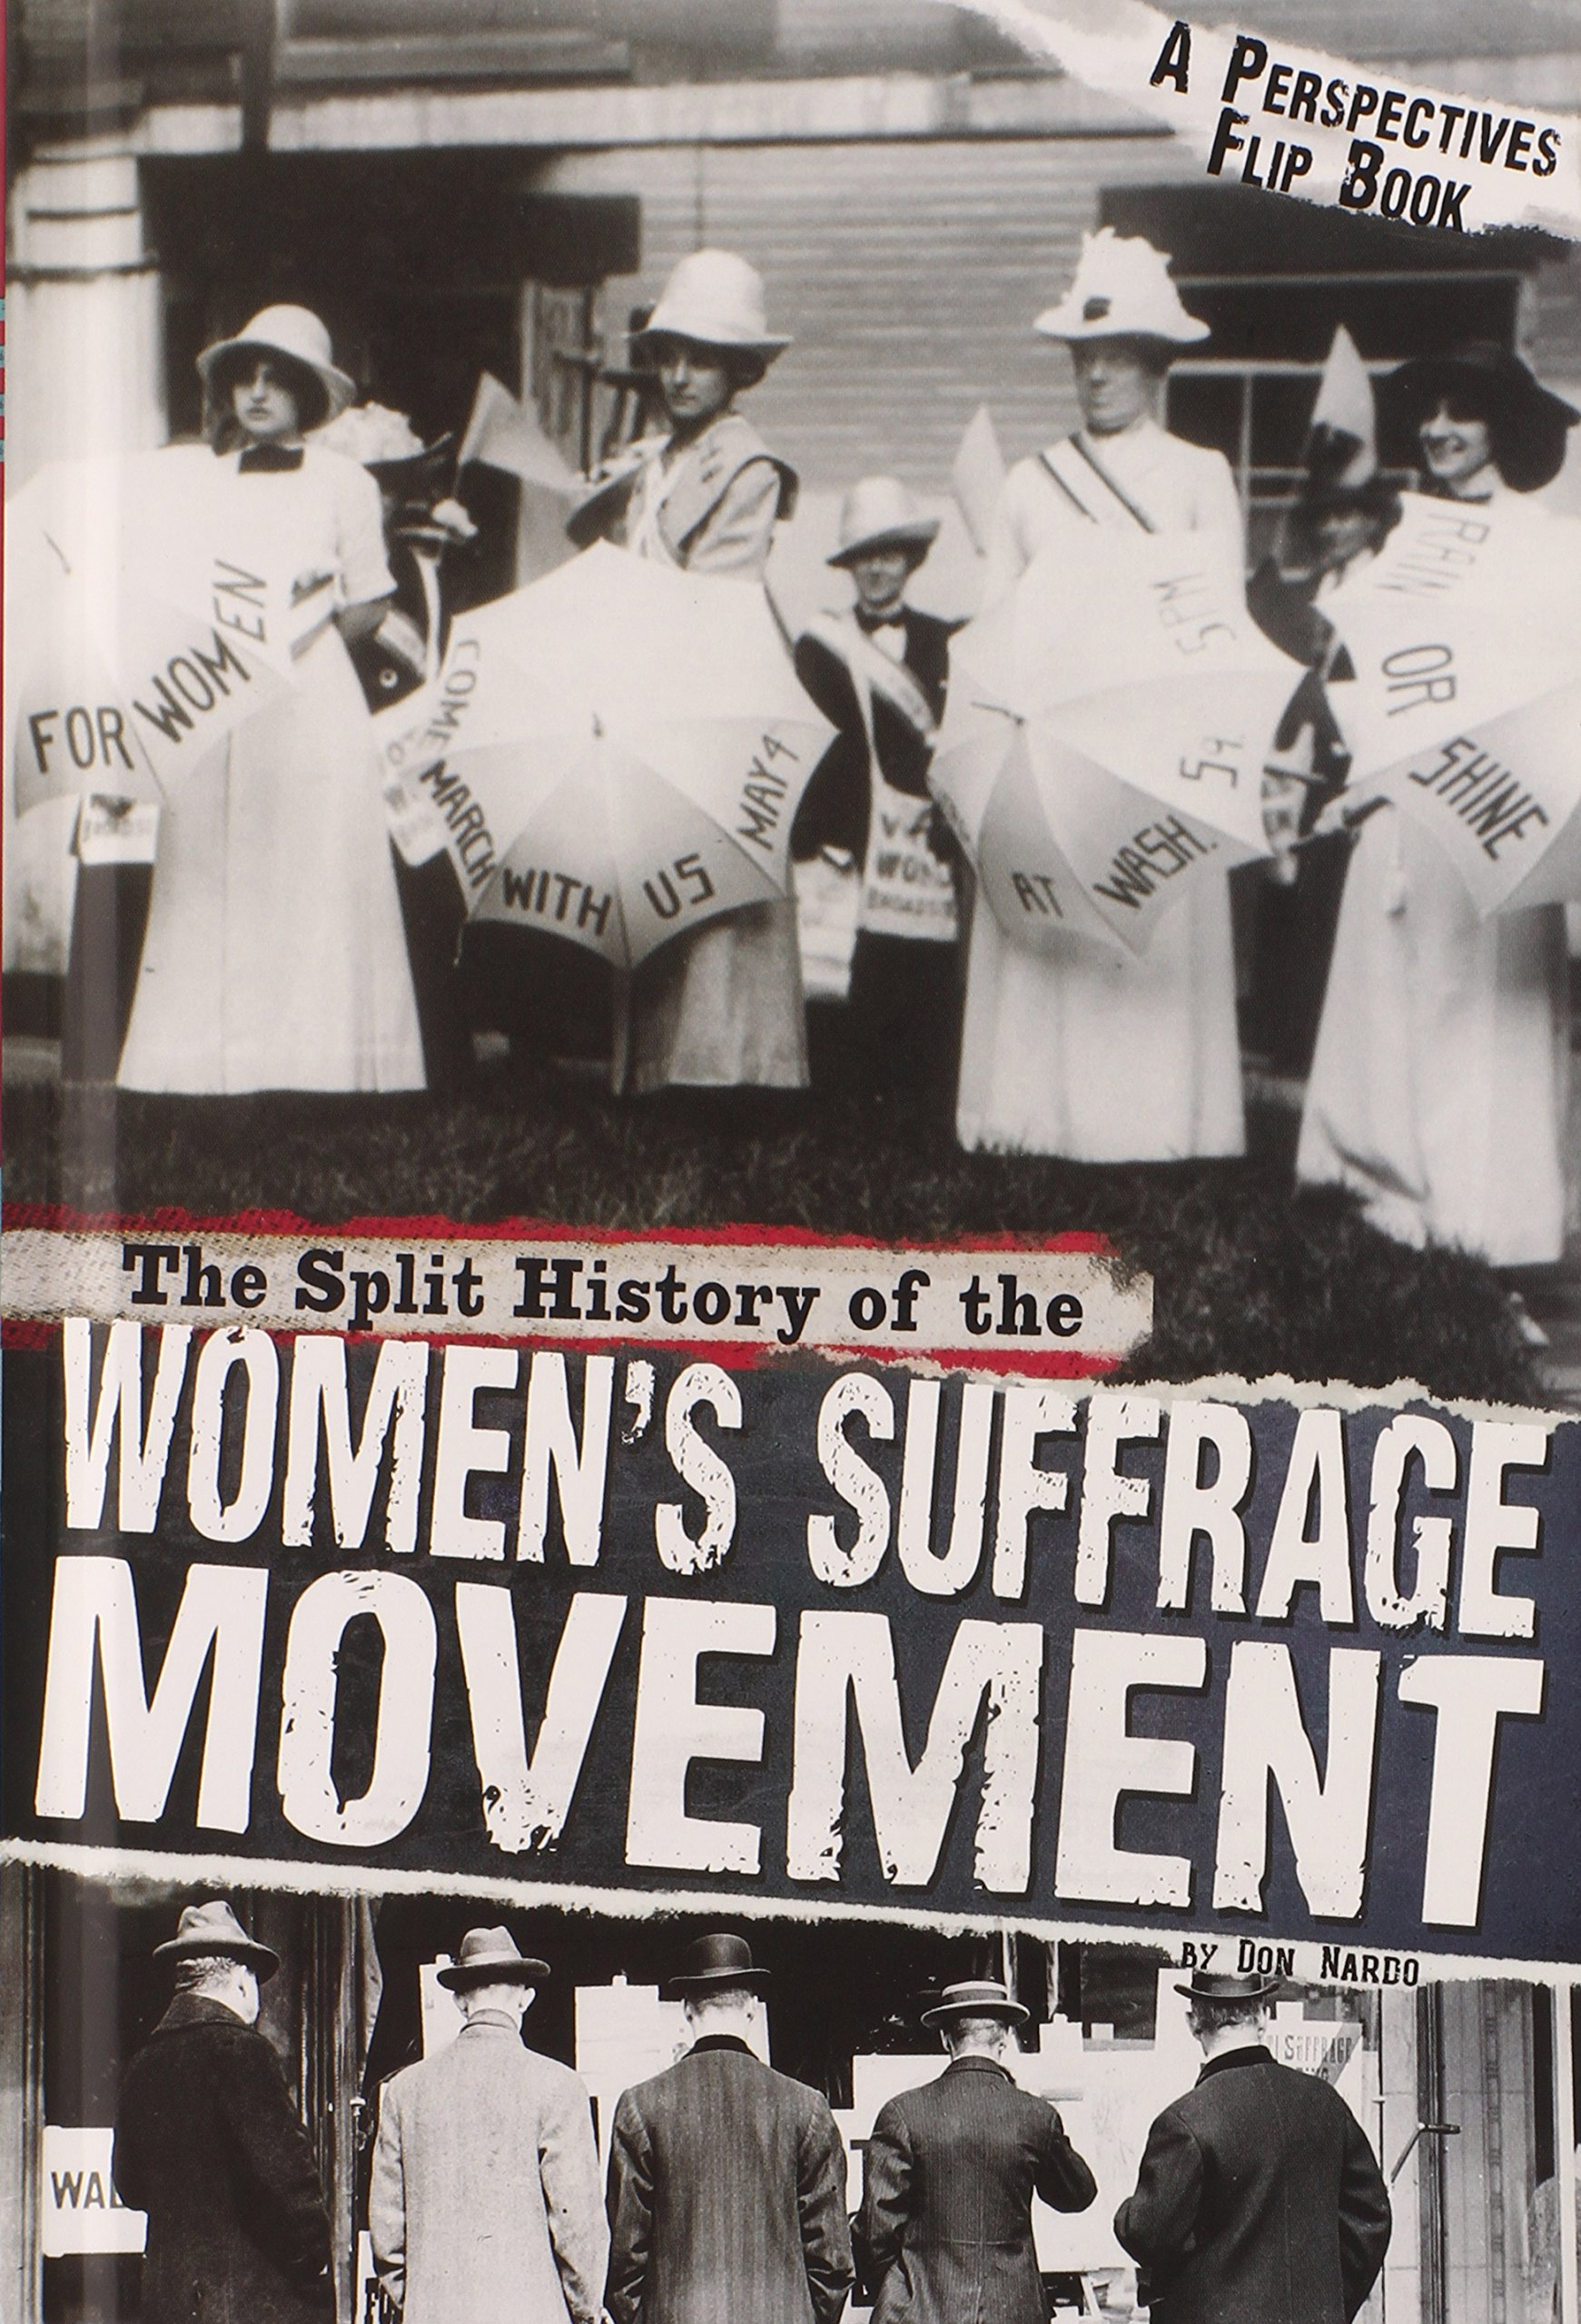 Download The Split History of the Women's Suffrage Movement: A Perspectives Flip Book (Perspectives Flip Books) PDF